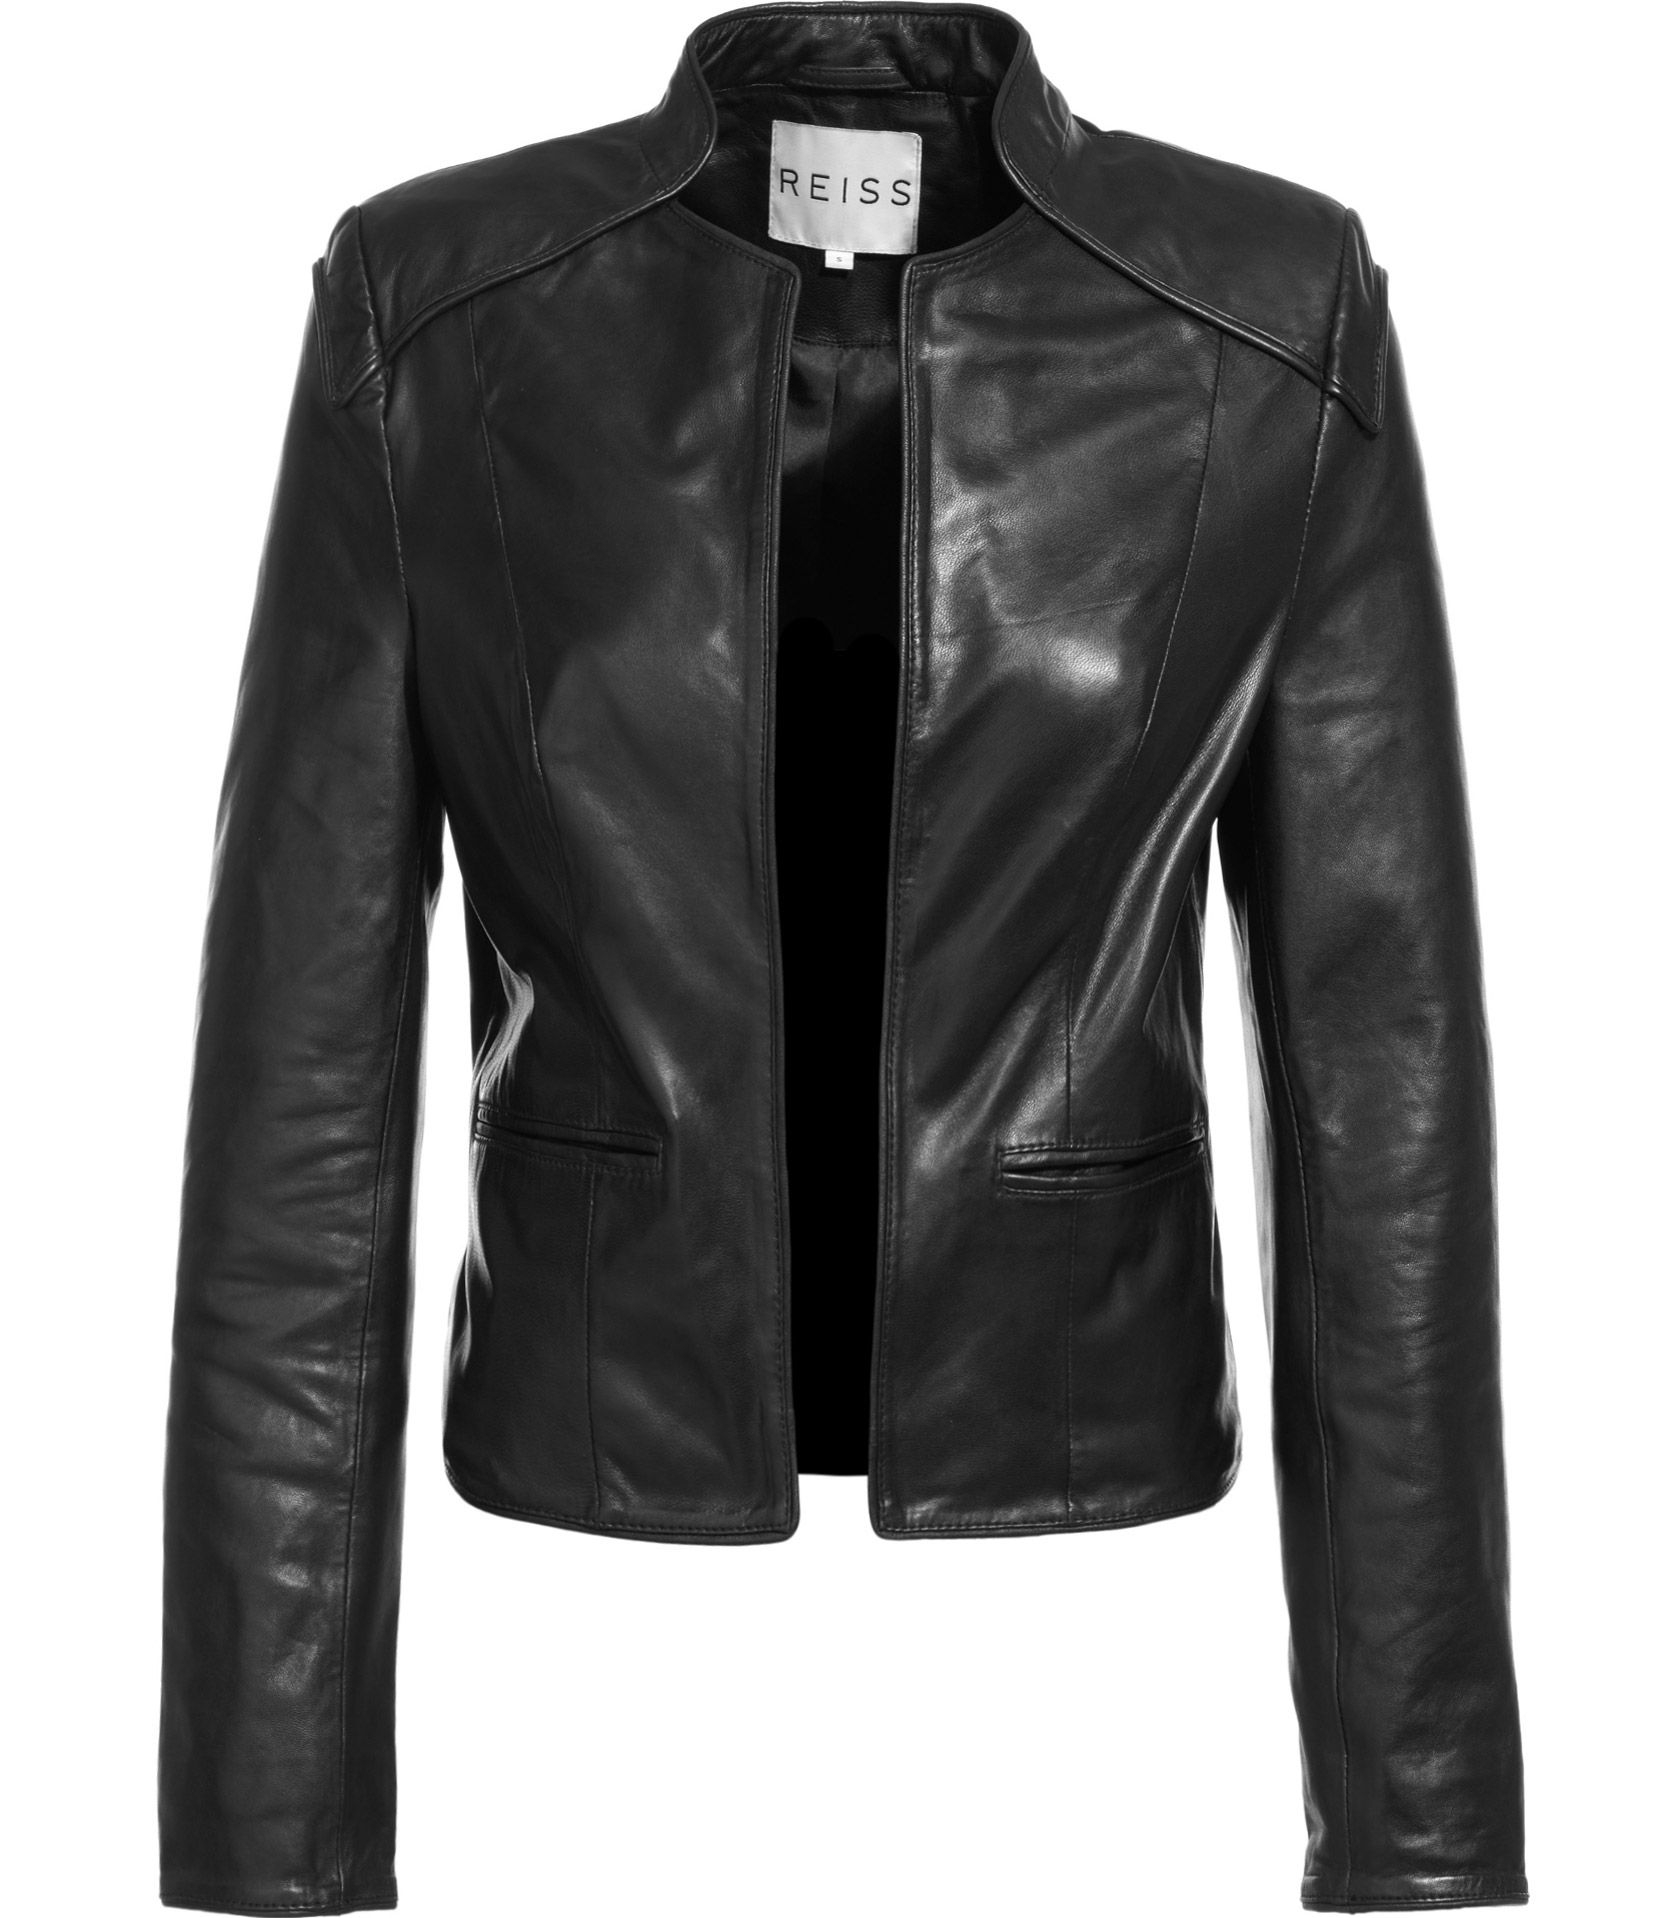 Gorgeous Reiss Leather Jacket Collarless Leather Jacket Leather Jacket [ 1918 x 1673 Pixel ]